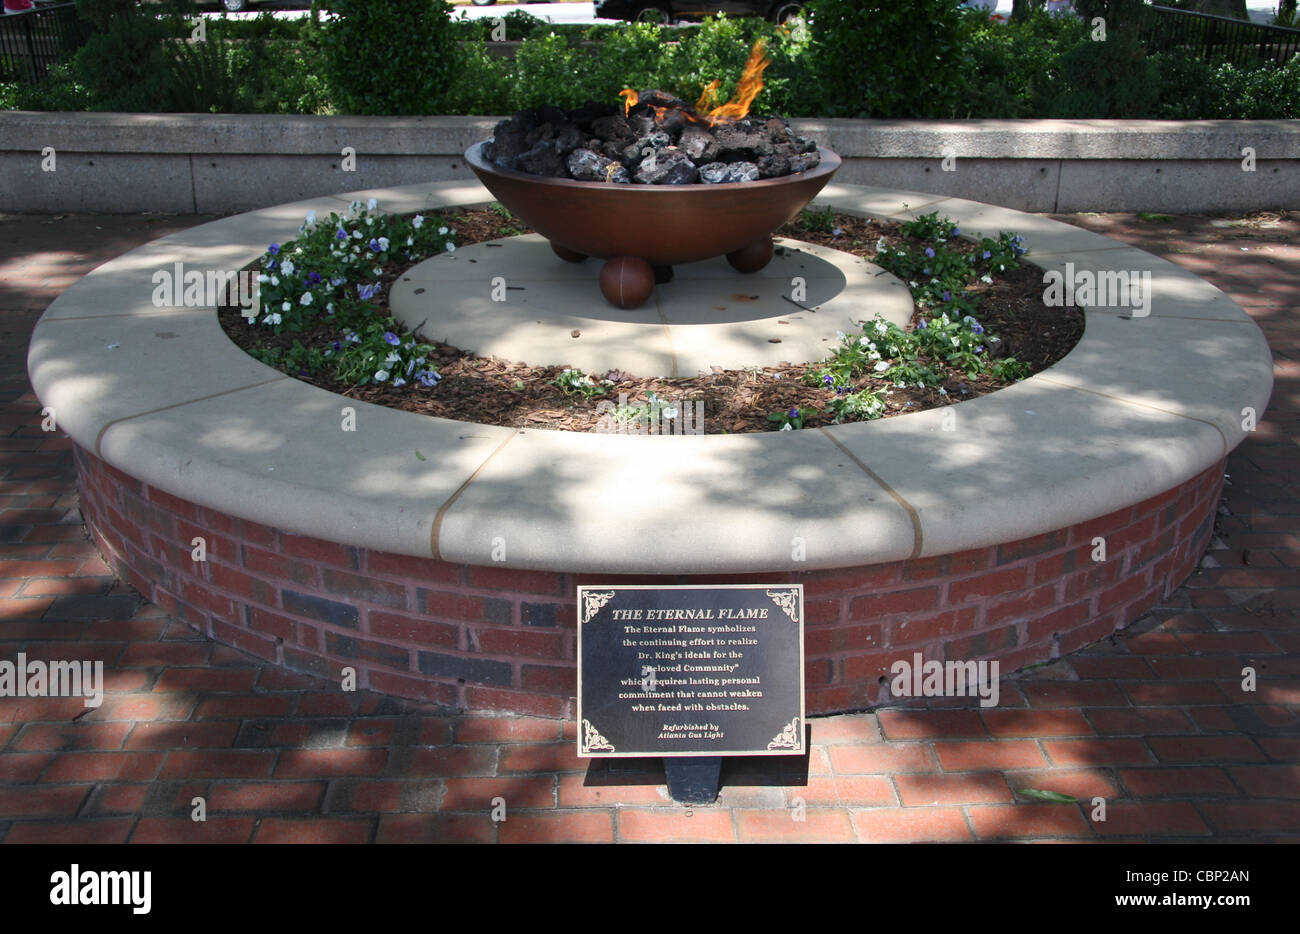 The Eternal Flame at the King Center, Atlanta, Georgia - Stock Image